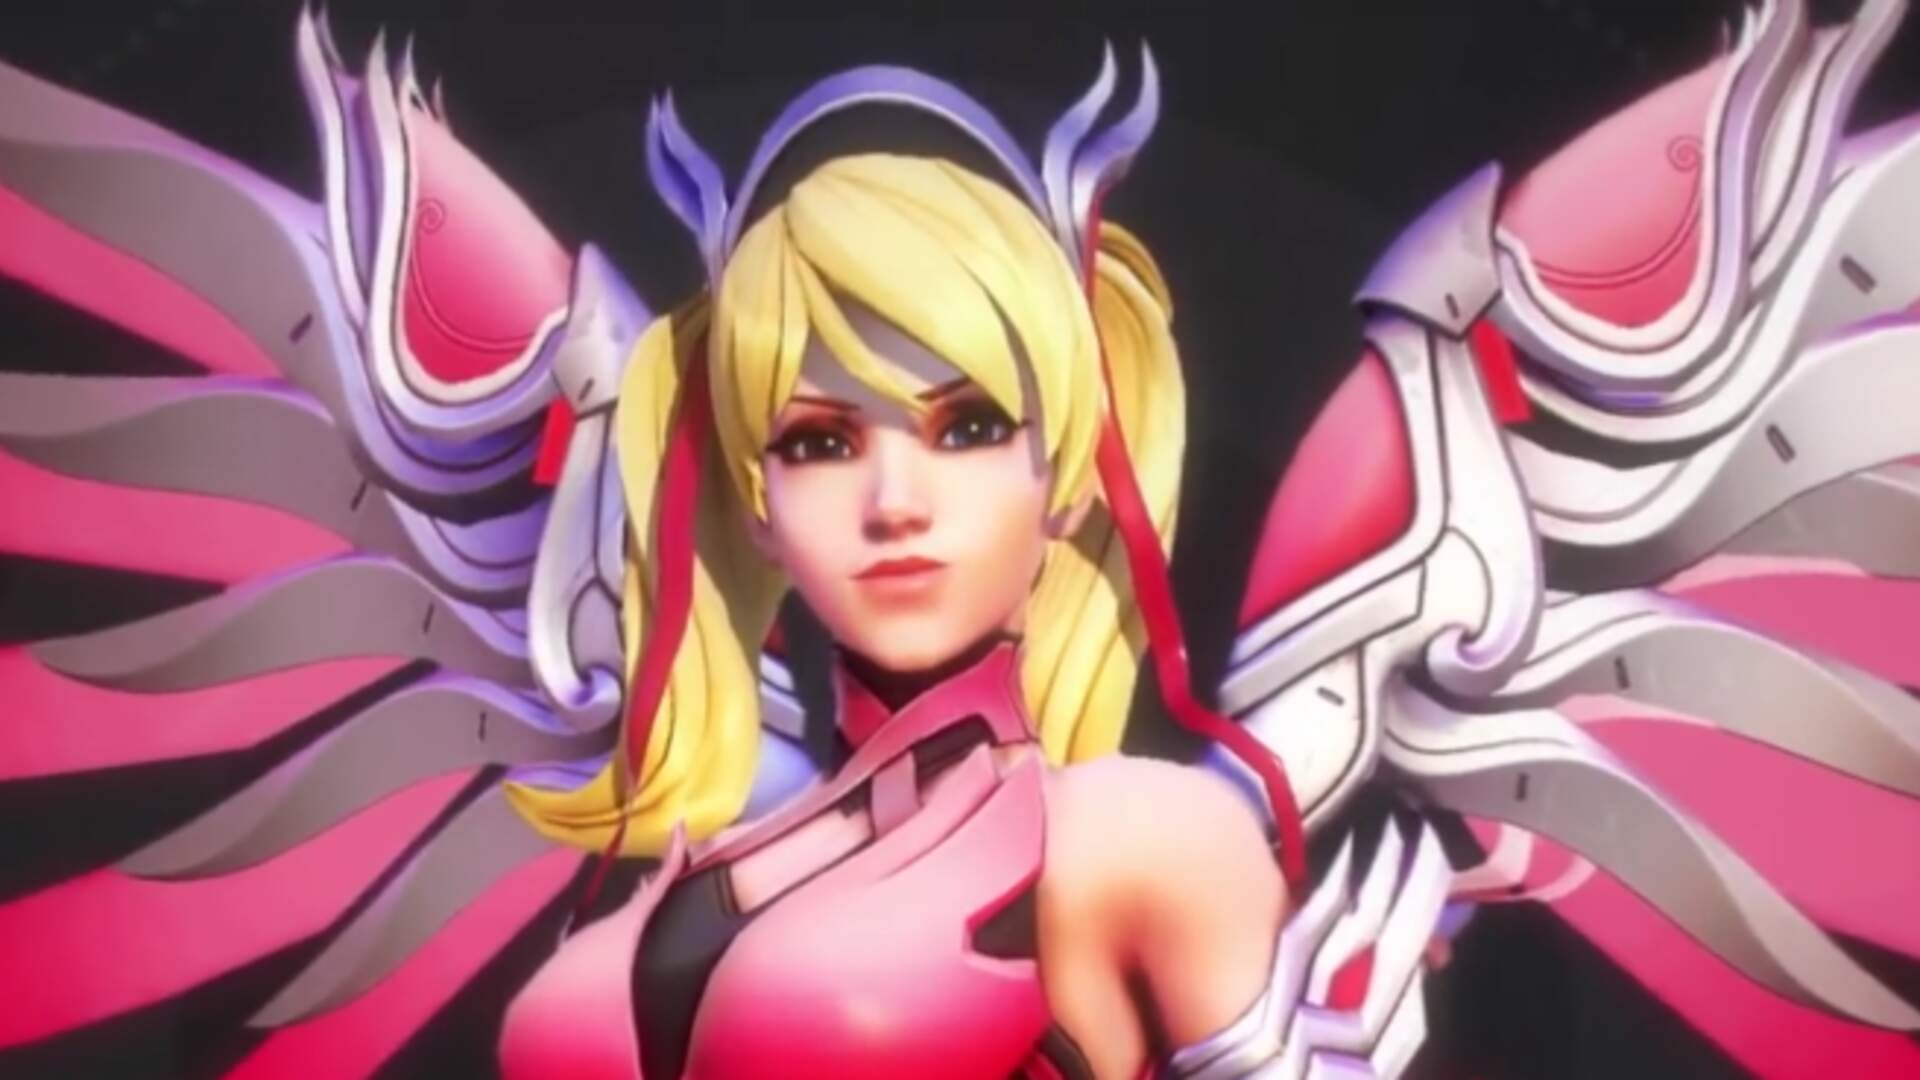 Overwatch Releases New Pink Mercy Skin With Full Proceeds Going to the Breast Cancer Research Foundation